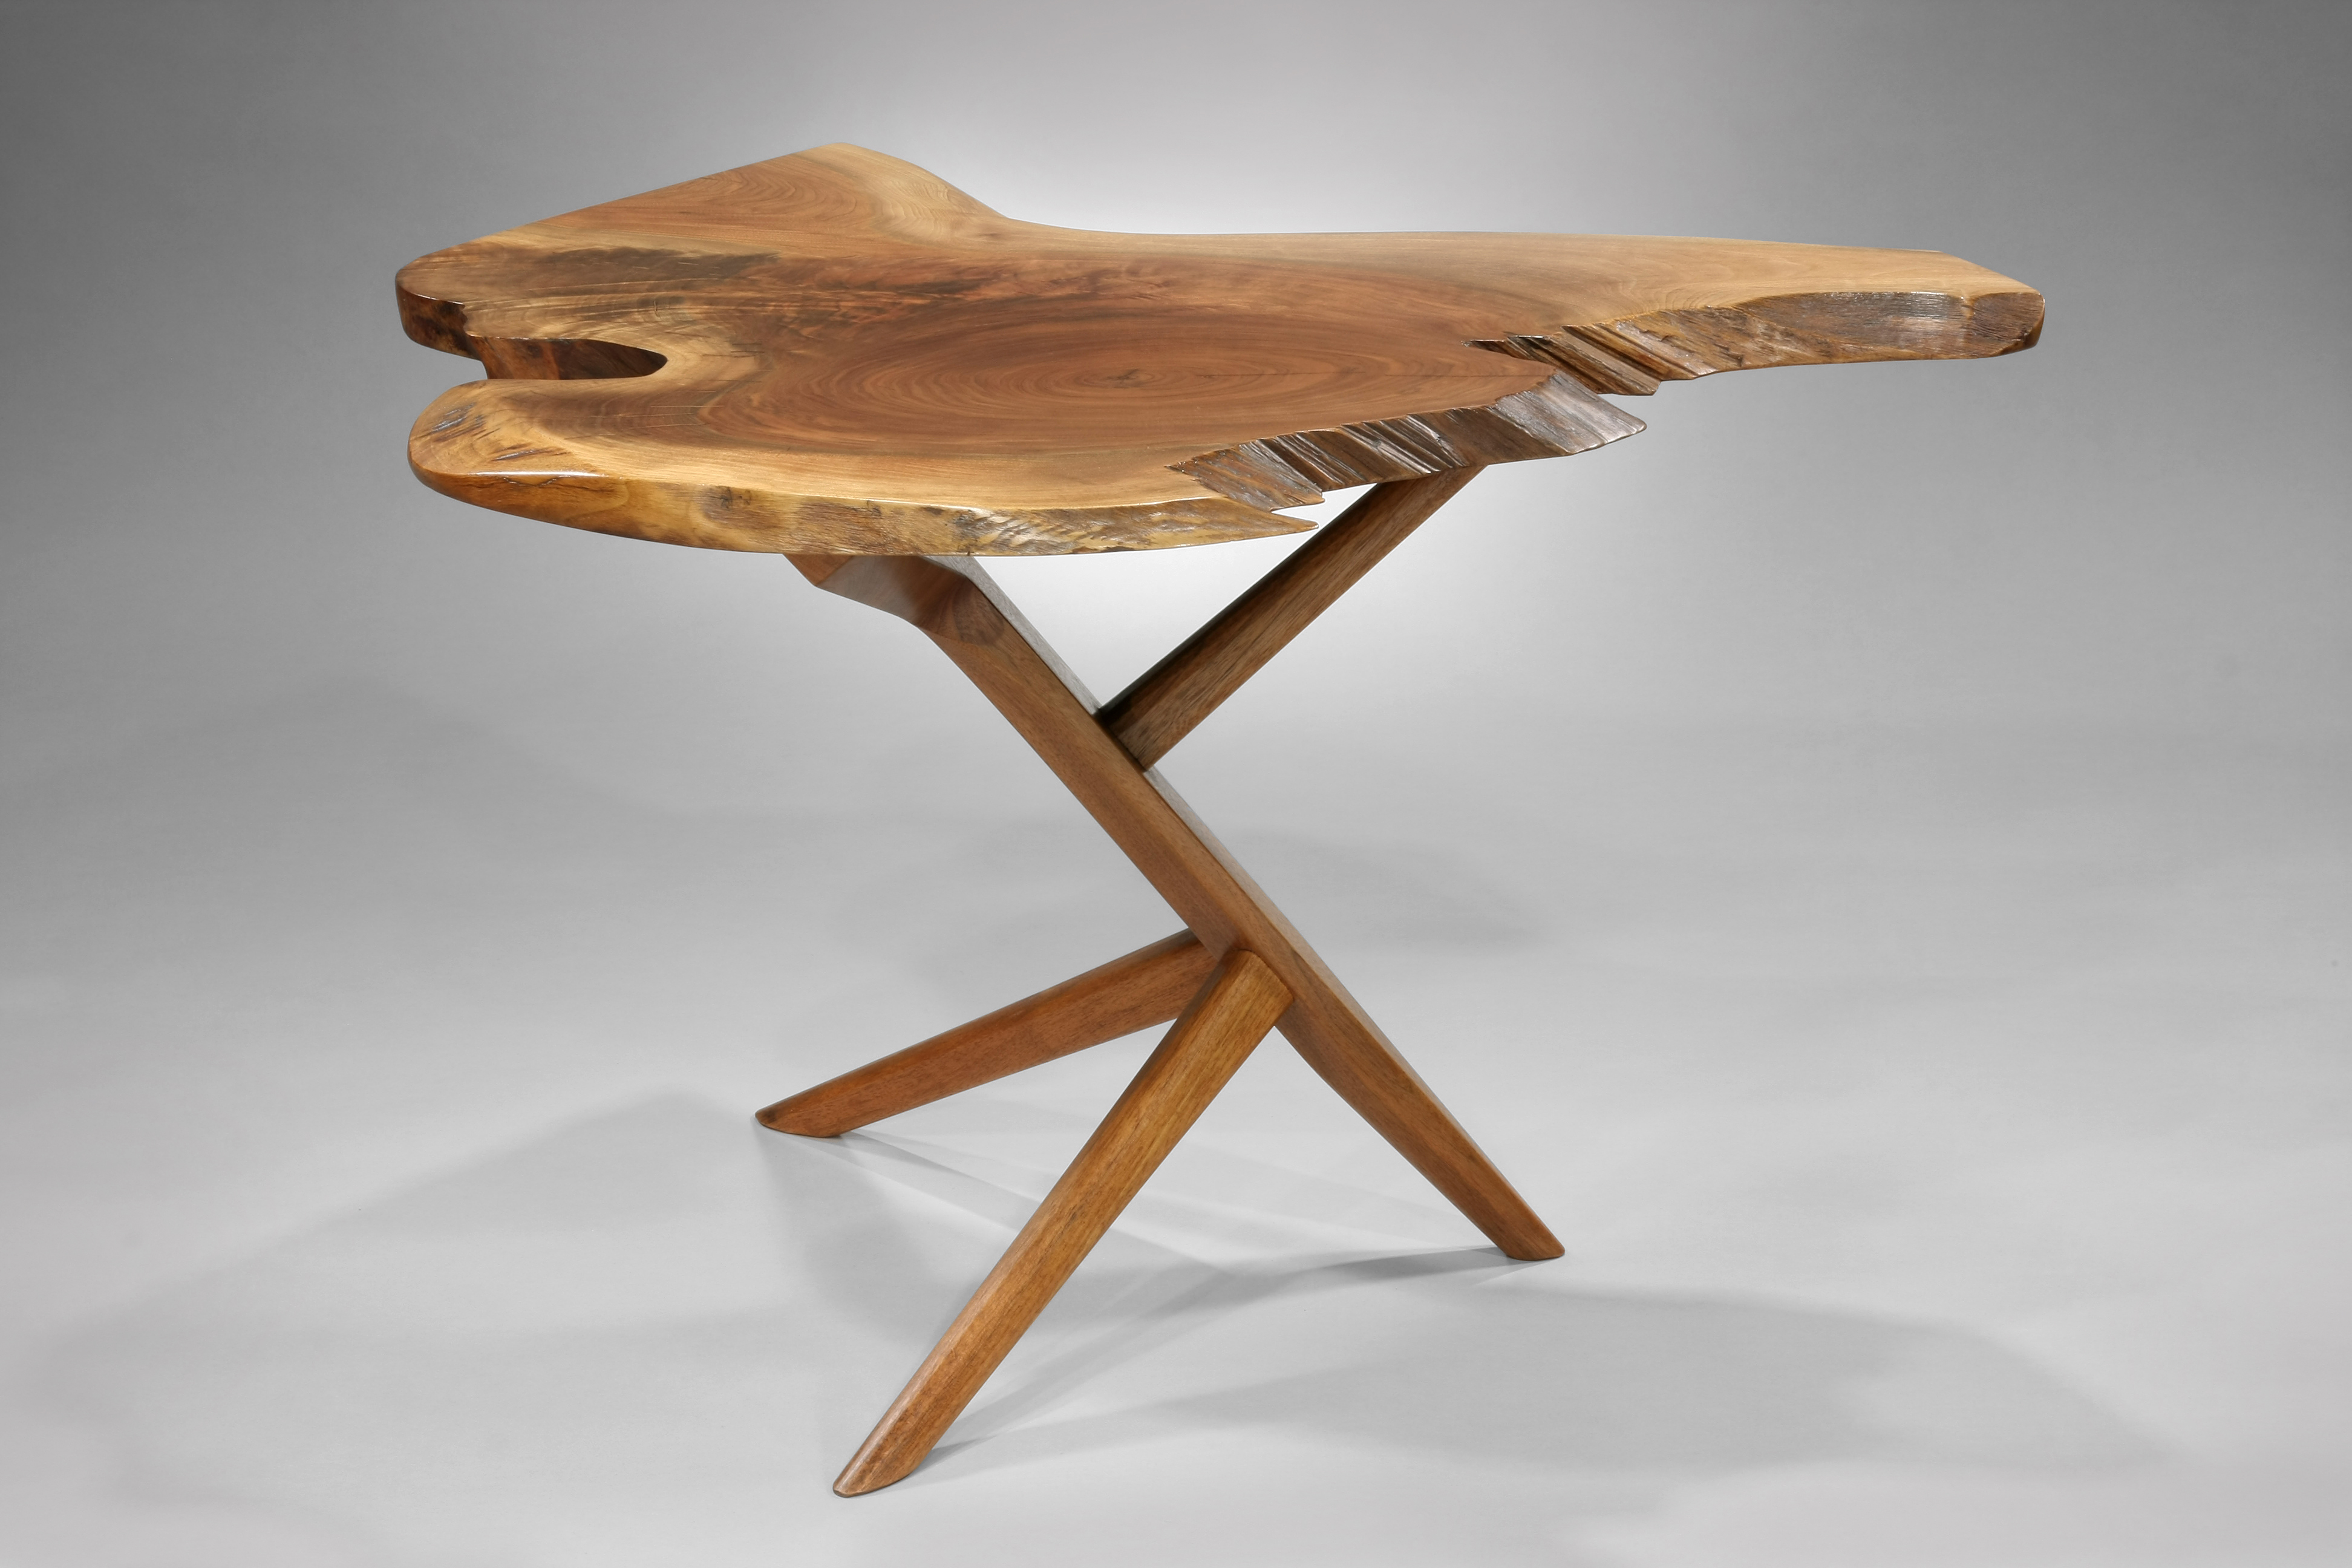 Marvelous photograph of George Nakashima Wooden Table (10 of 24) Images Frompo with #3E2412 color and 3888x2592 pixels